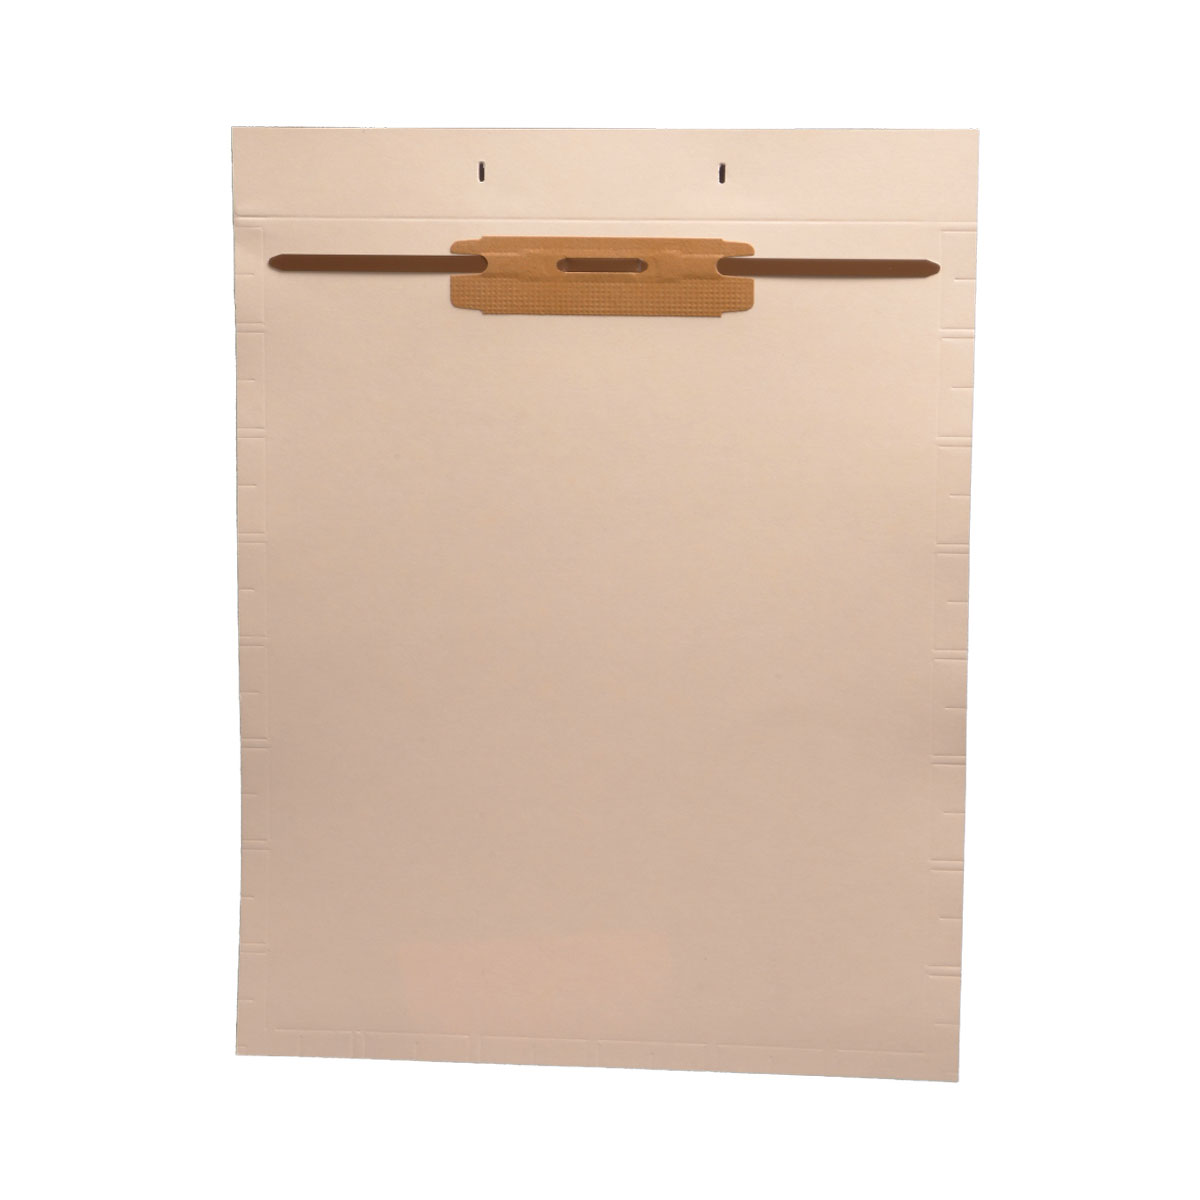 S-9051 - Blank Fileback Divider Sheets, Top Flap and Divider (Box of 100)